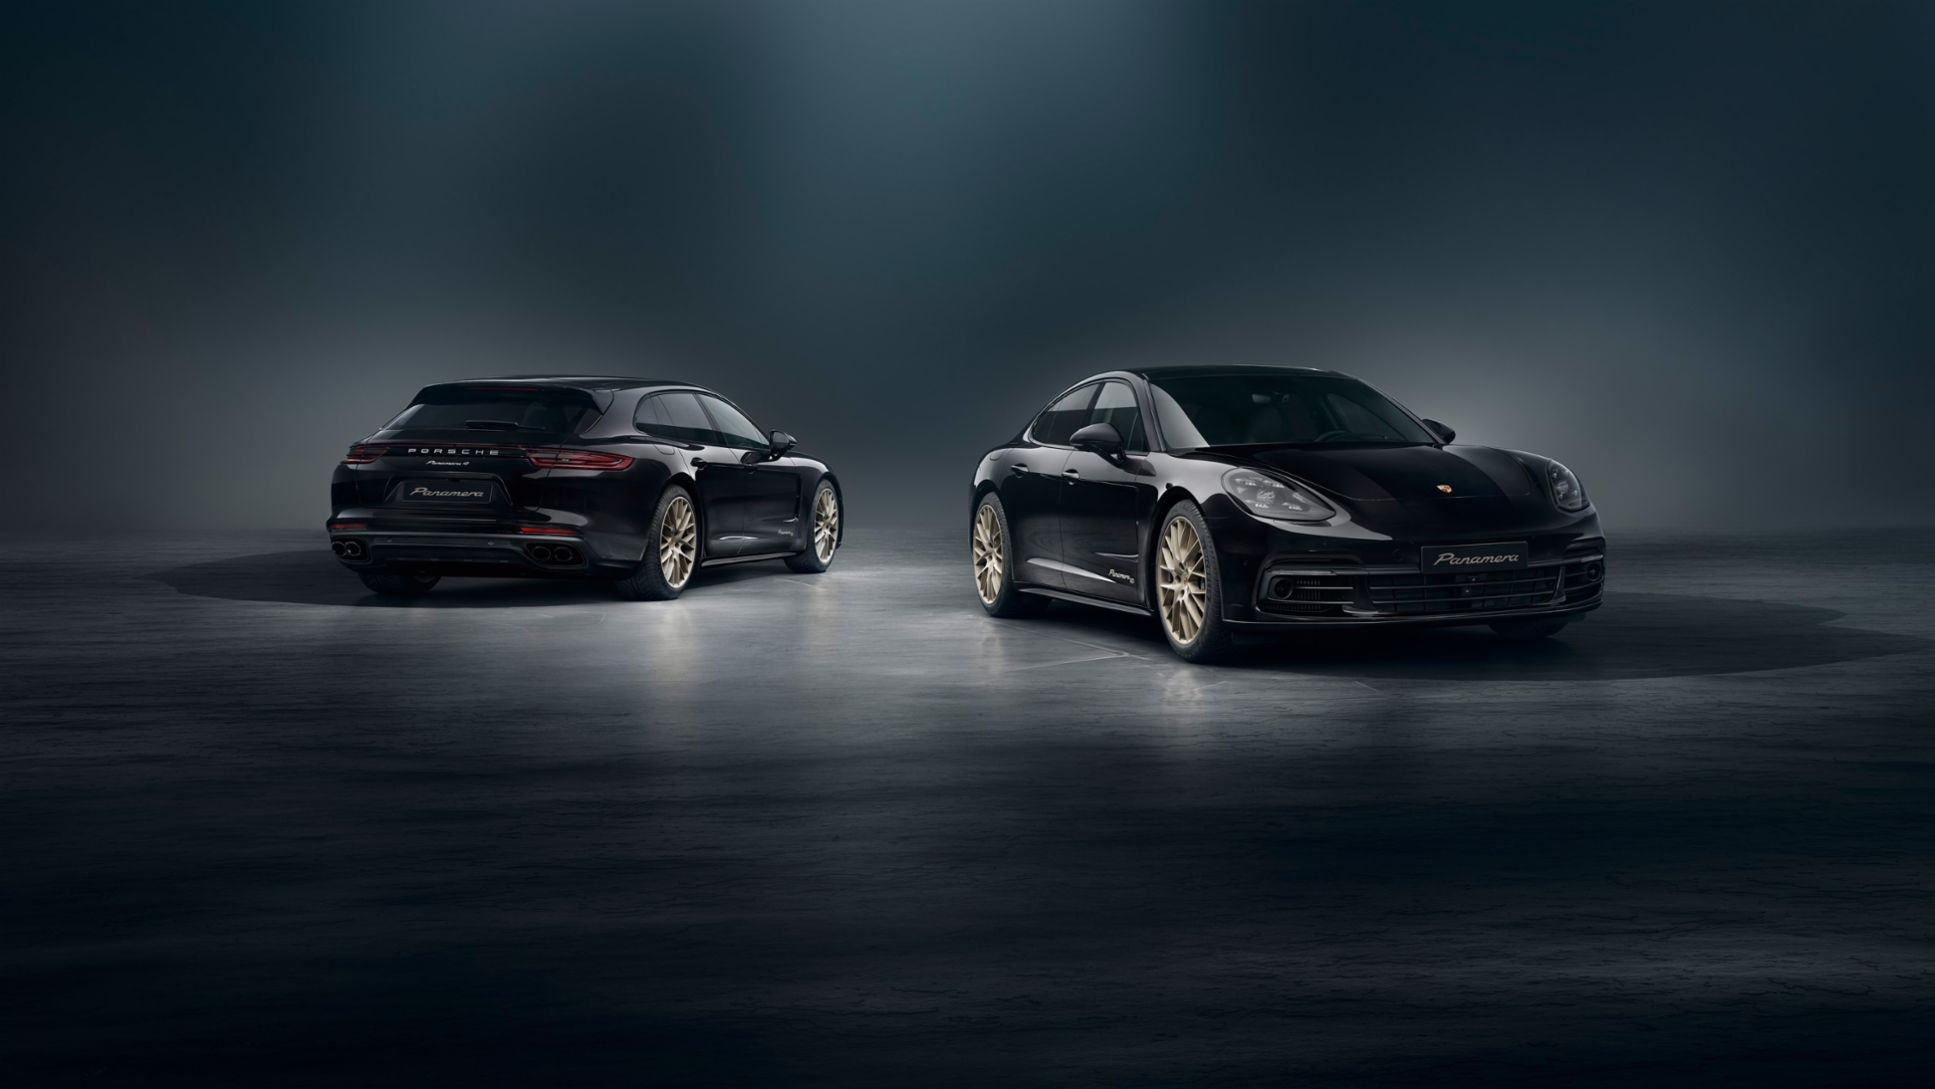 Panamera 4 Sport Turismo 10 Years Edition (l), Panamera 4 10 Years Edition, 2019, Porsche AG